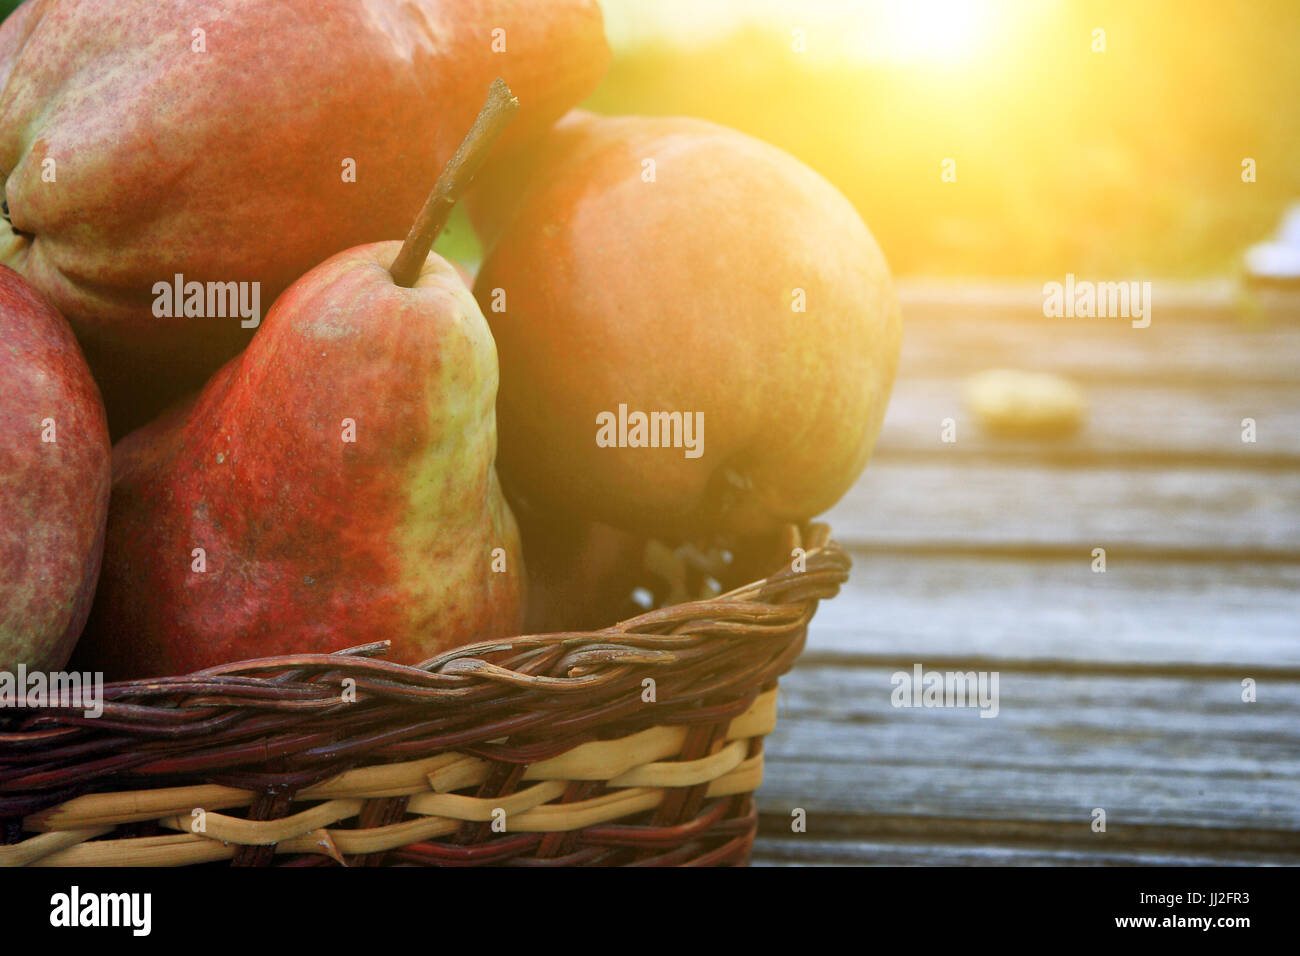 Group of pears - Stock Image